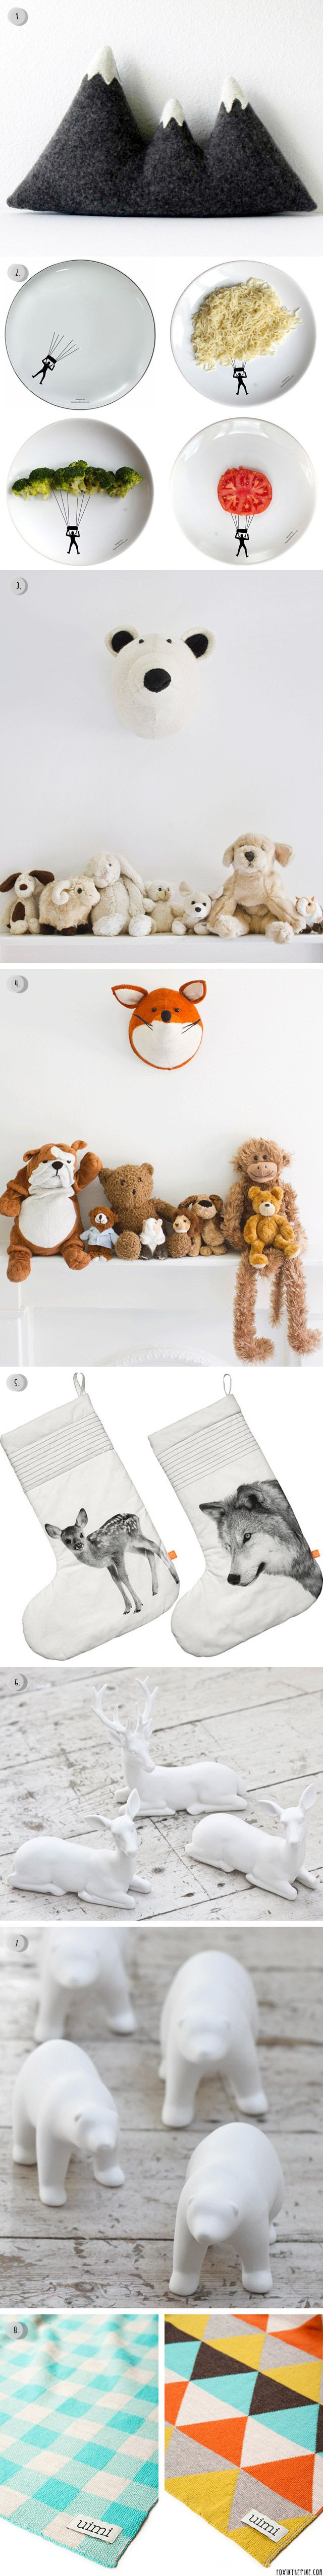 27 best quirky gift ideas images on pinterest balconies craft gift ideas foxinthepine negle Images